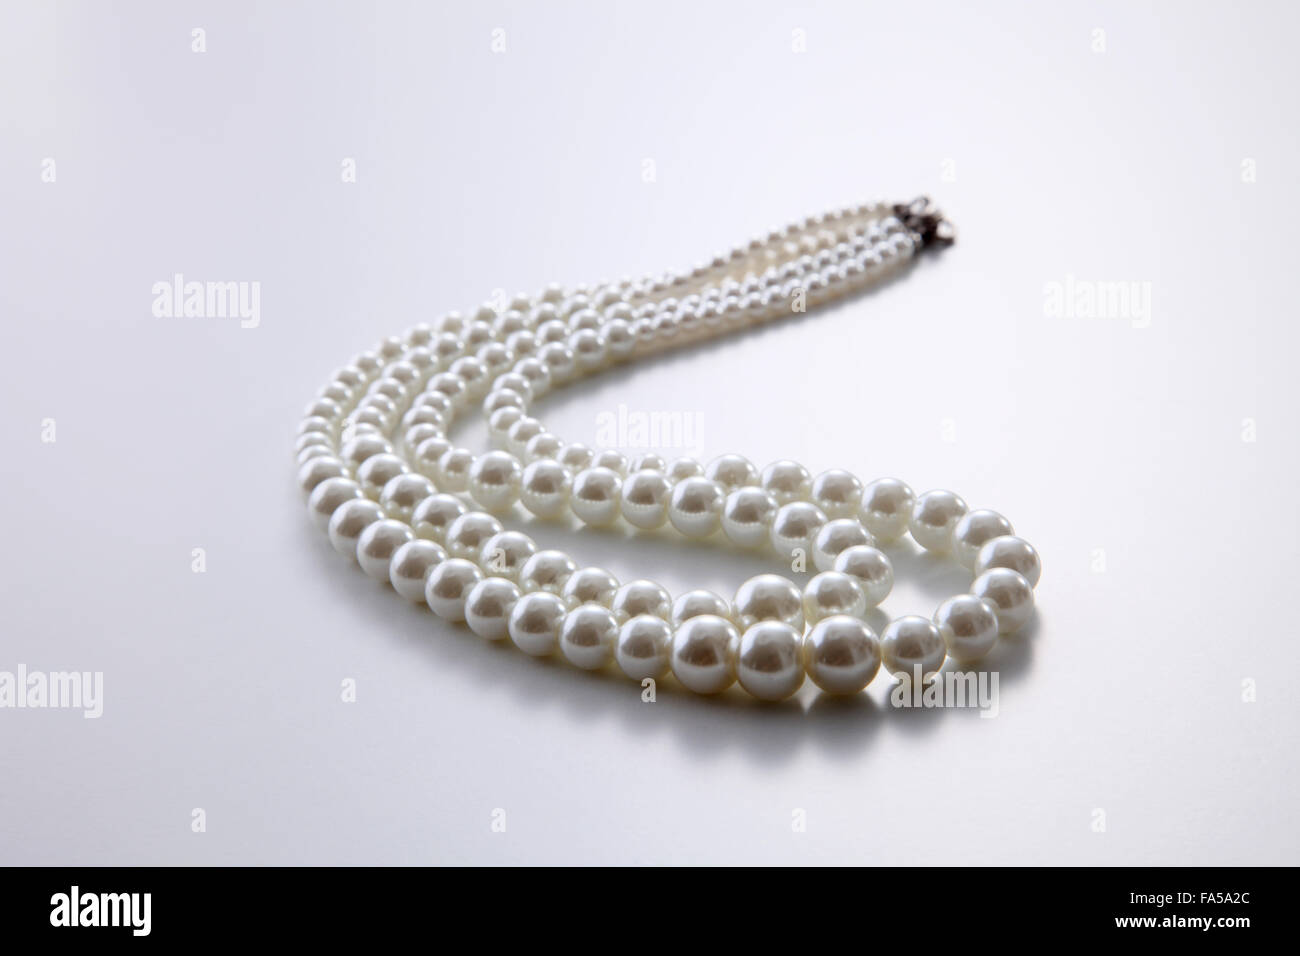 676ad62ba08aac pearls necklace on the white background Stock Photo: 92316068 - Alamy